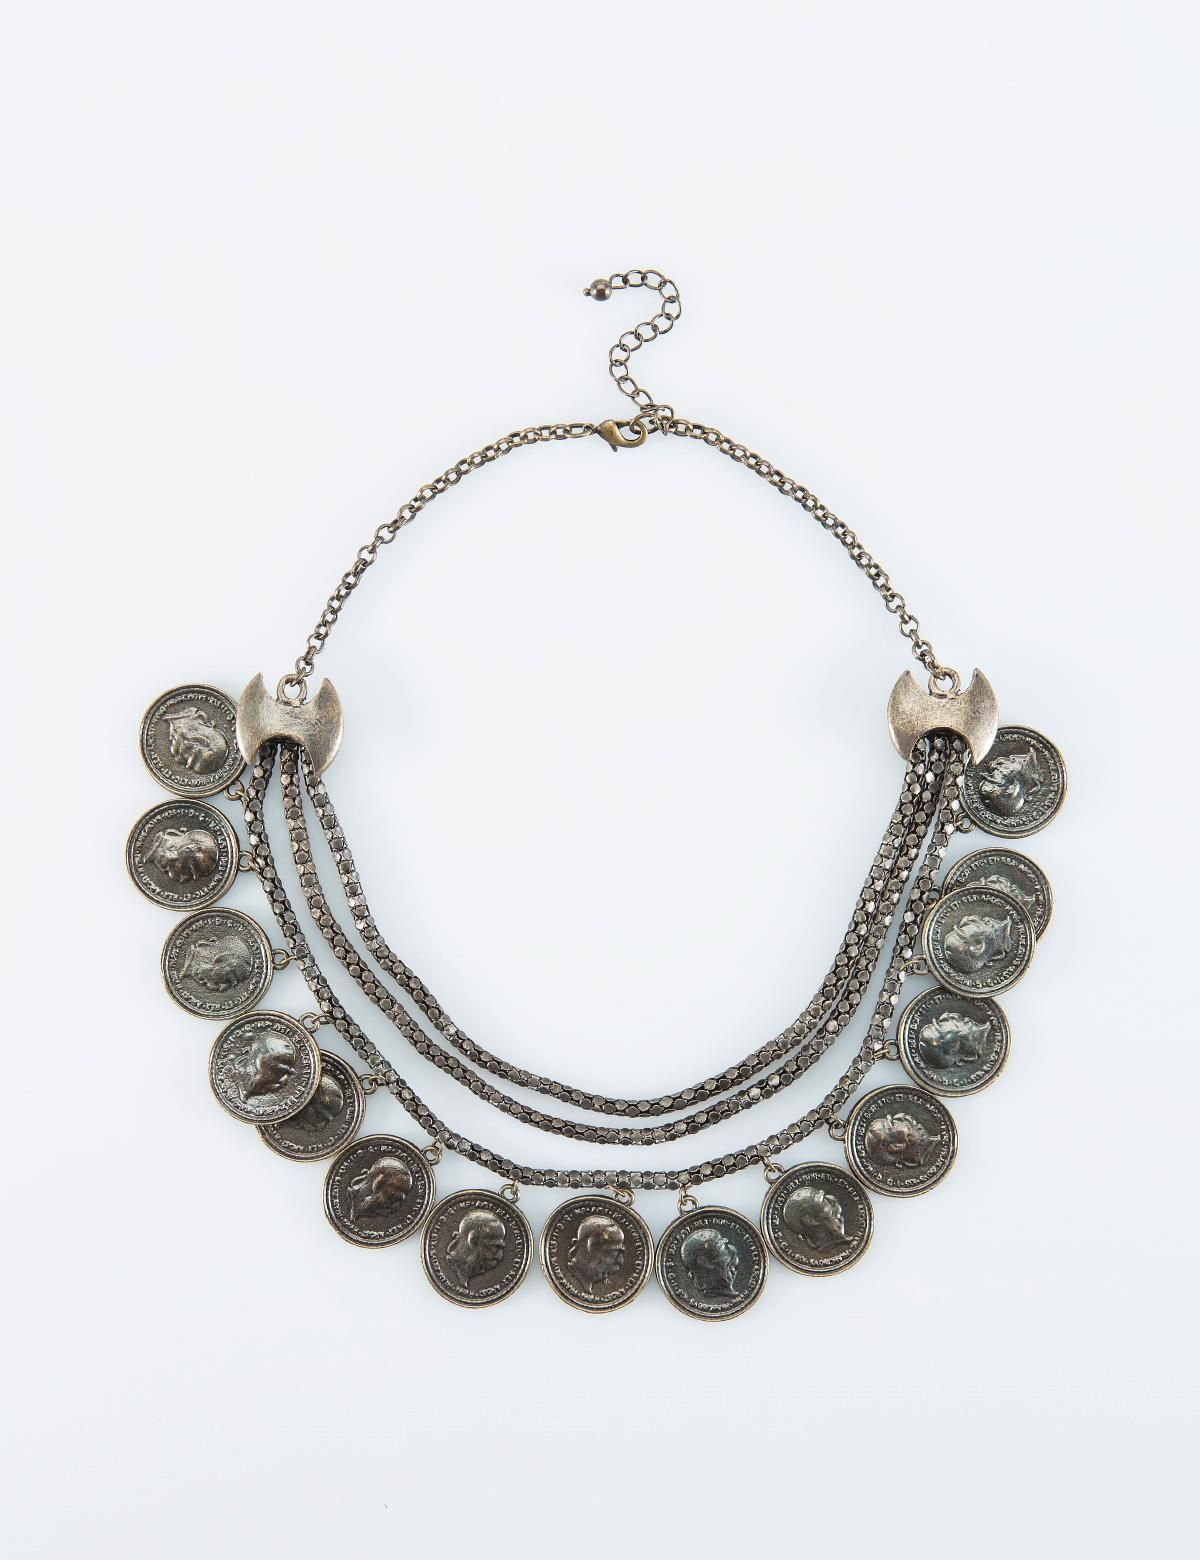 Coin Halsband Massing Necklace Jewelry Smycken Accessoarer Indiska Shop Online Jewelry Necklace Silver